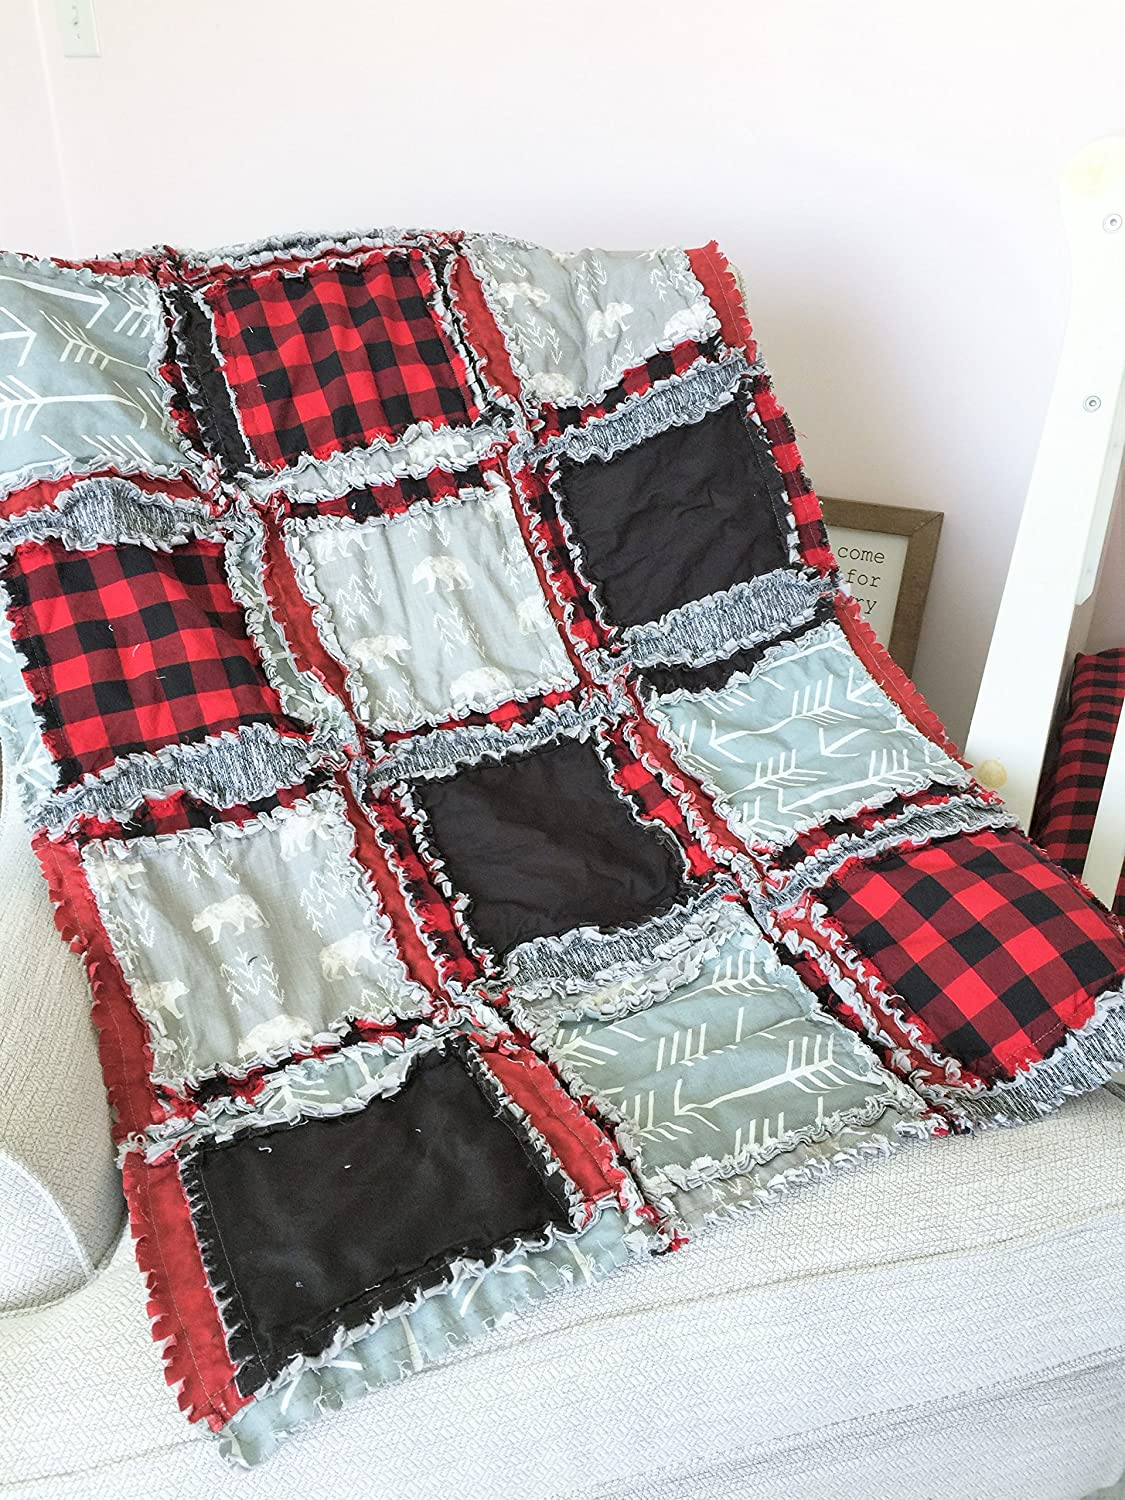 Image of Bear Blanket - Gray/Red Plaid/Black - QUILT Only Home and Kitchen